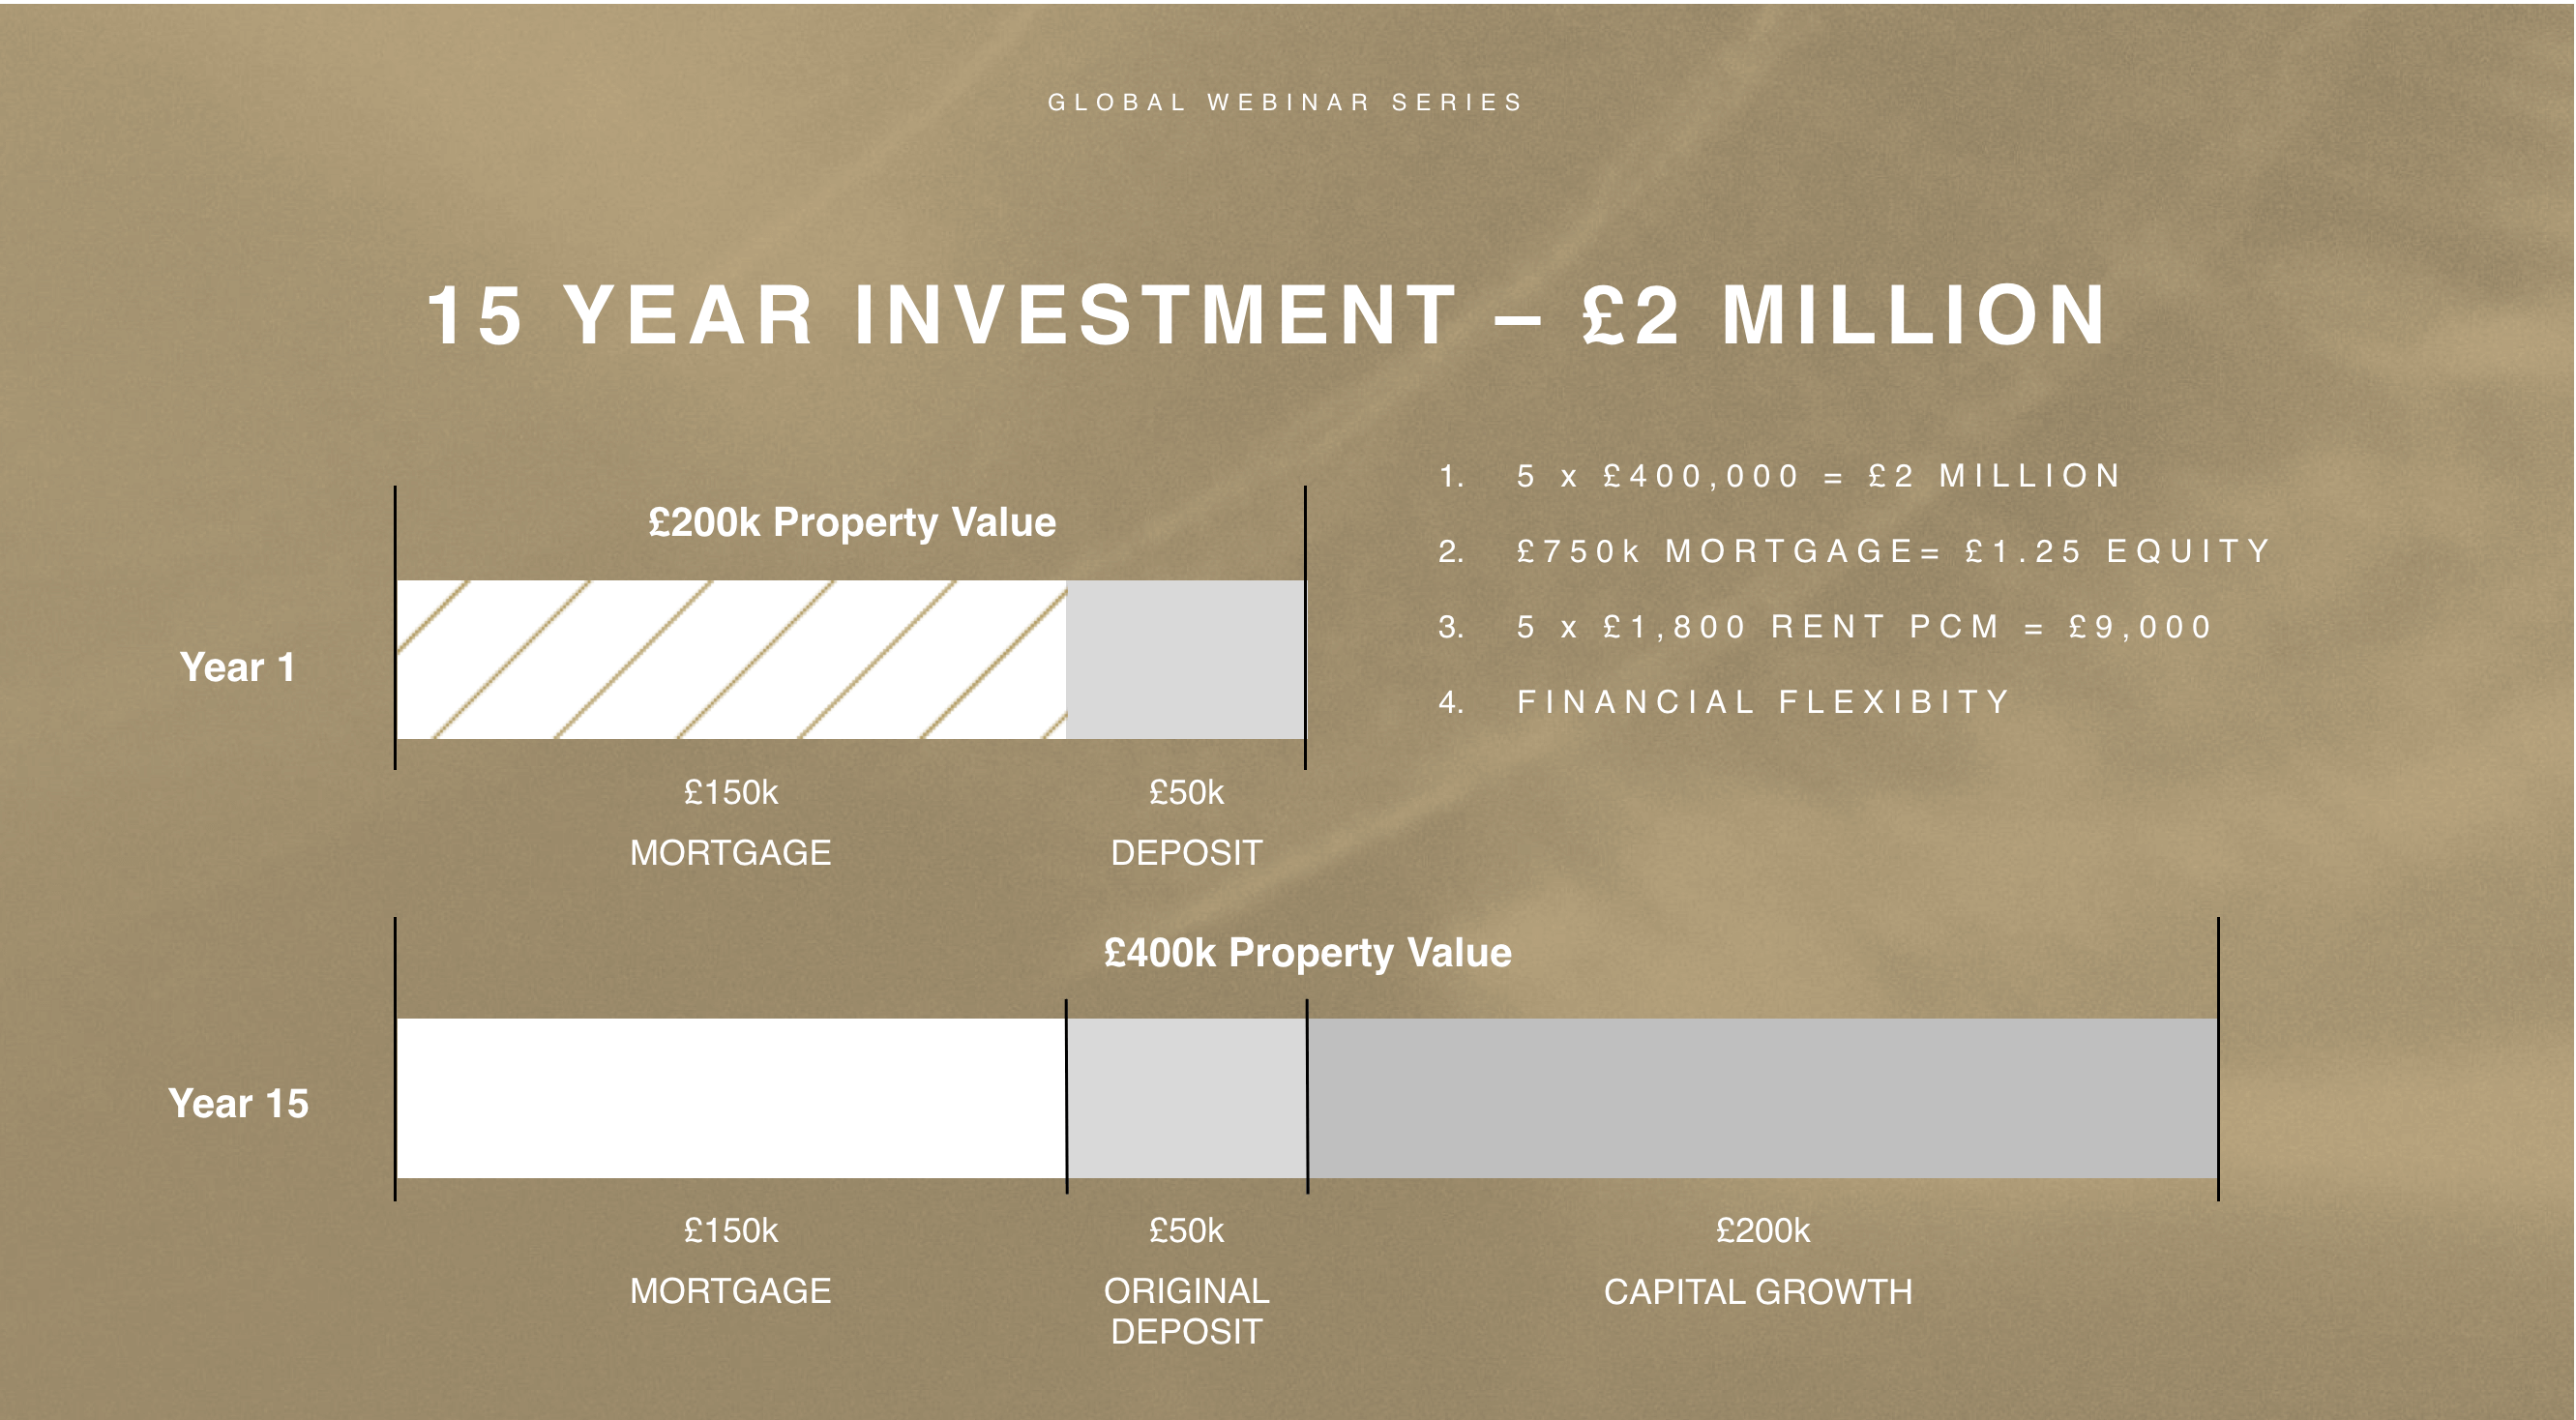 Overall Investment Strategy